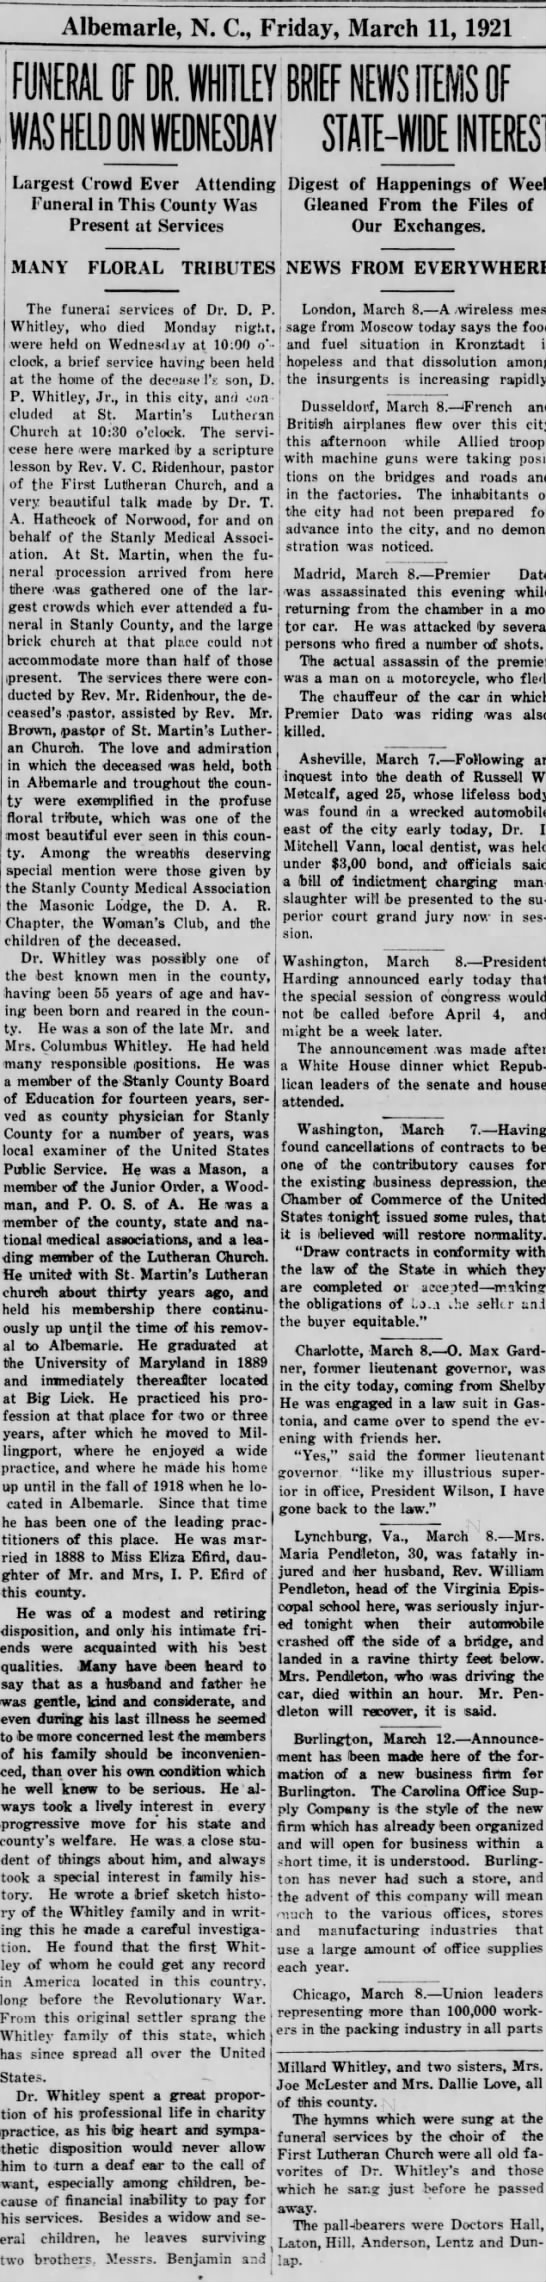 Funeral Obit for Dr. D.P. Whitley on 11 Mar 1921 - Albemarle, N. C, Friday, March 11, 1921 Largest...